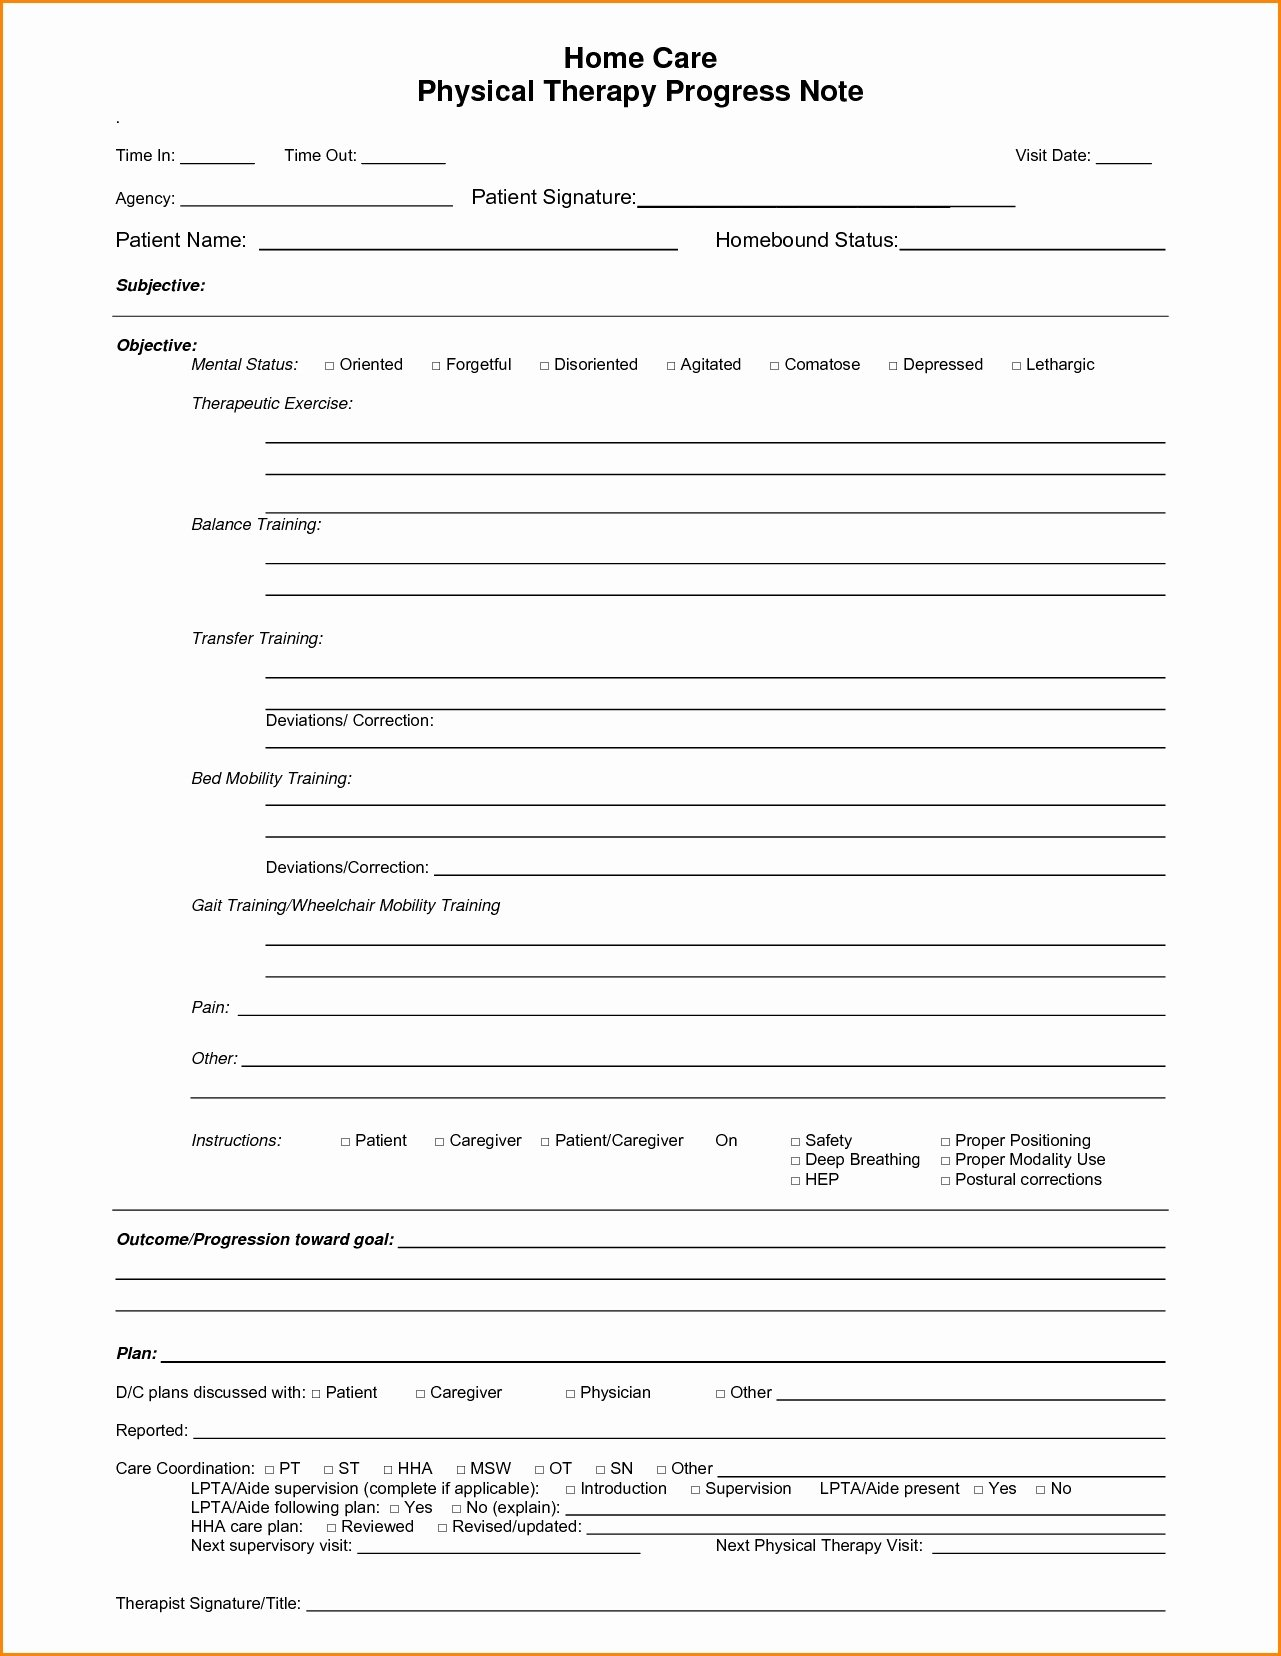 Group therapy Note Template Luxury Chest Physiotherapy and Airway Clearance Devices Medical